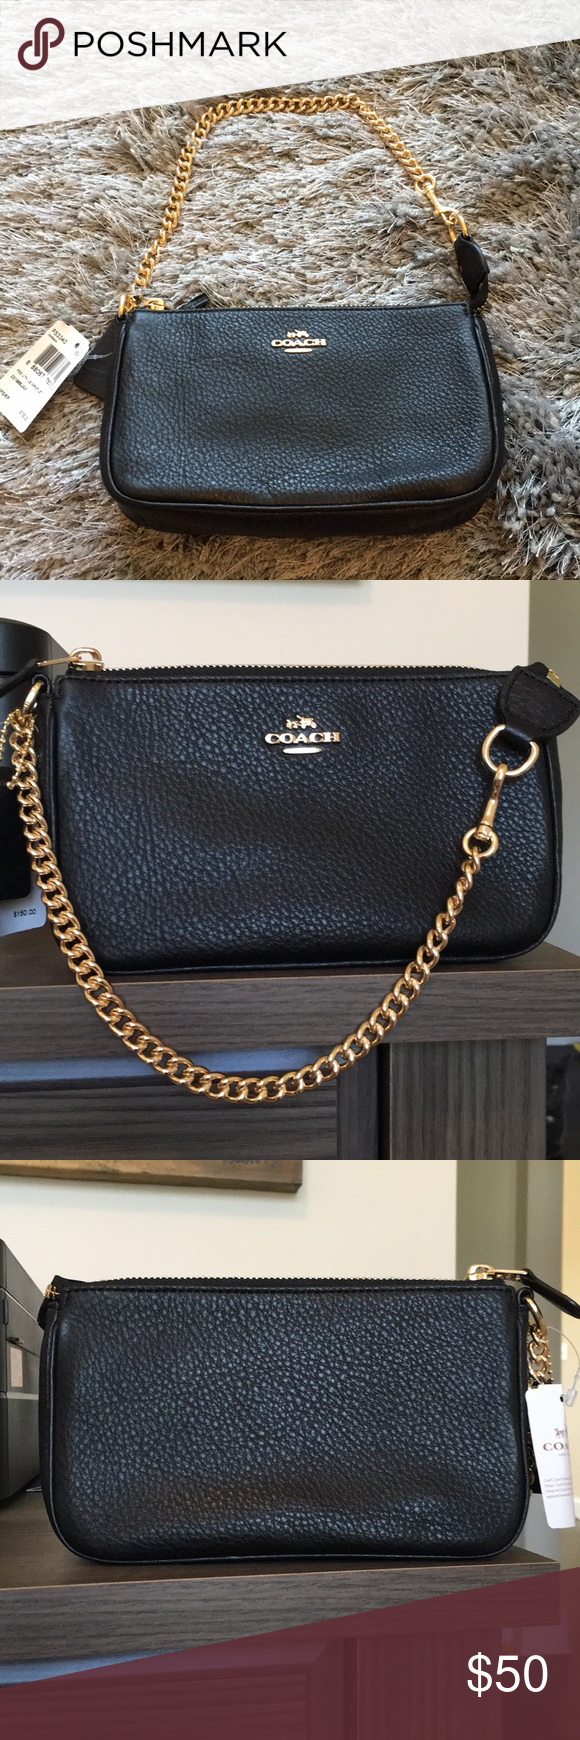 79c7e42ba47 New Coach Pochette NWT! Soft black pebbled leather with gold chain strap.  Fits large